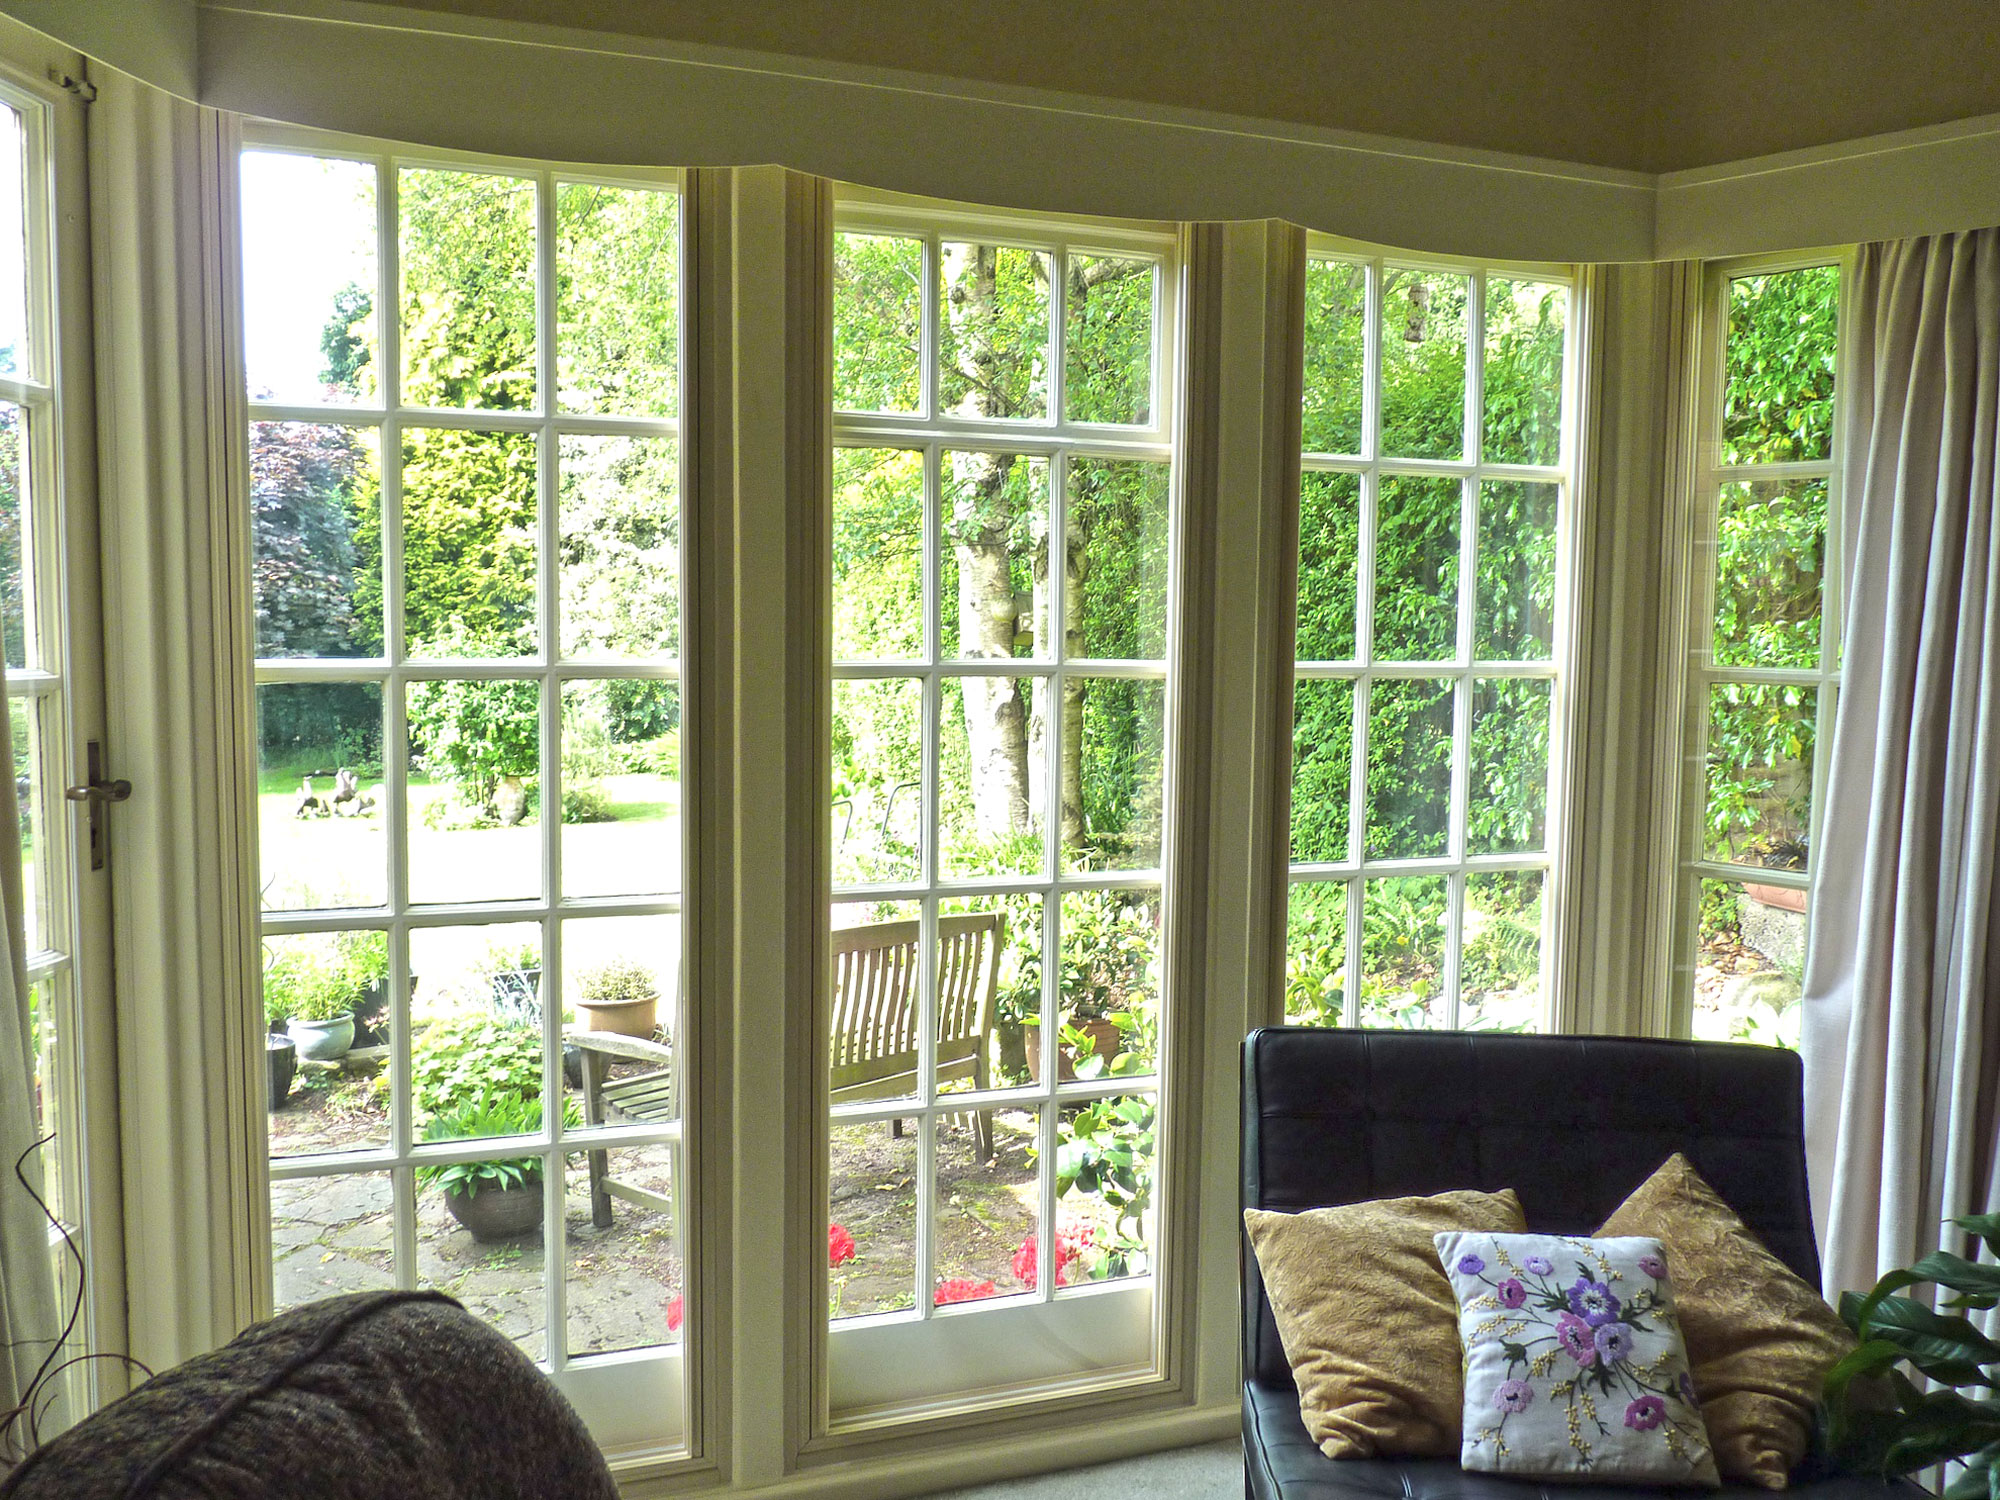 A room with a clear view clearview secondary glazing for French window